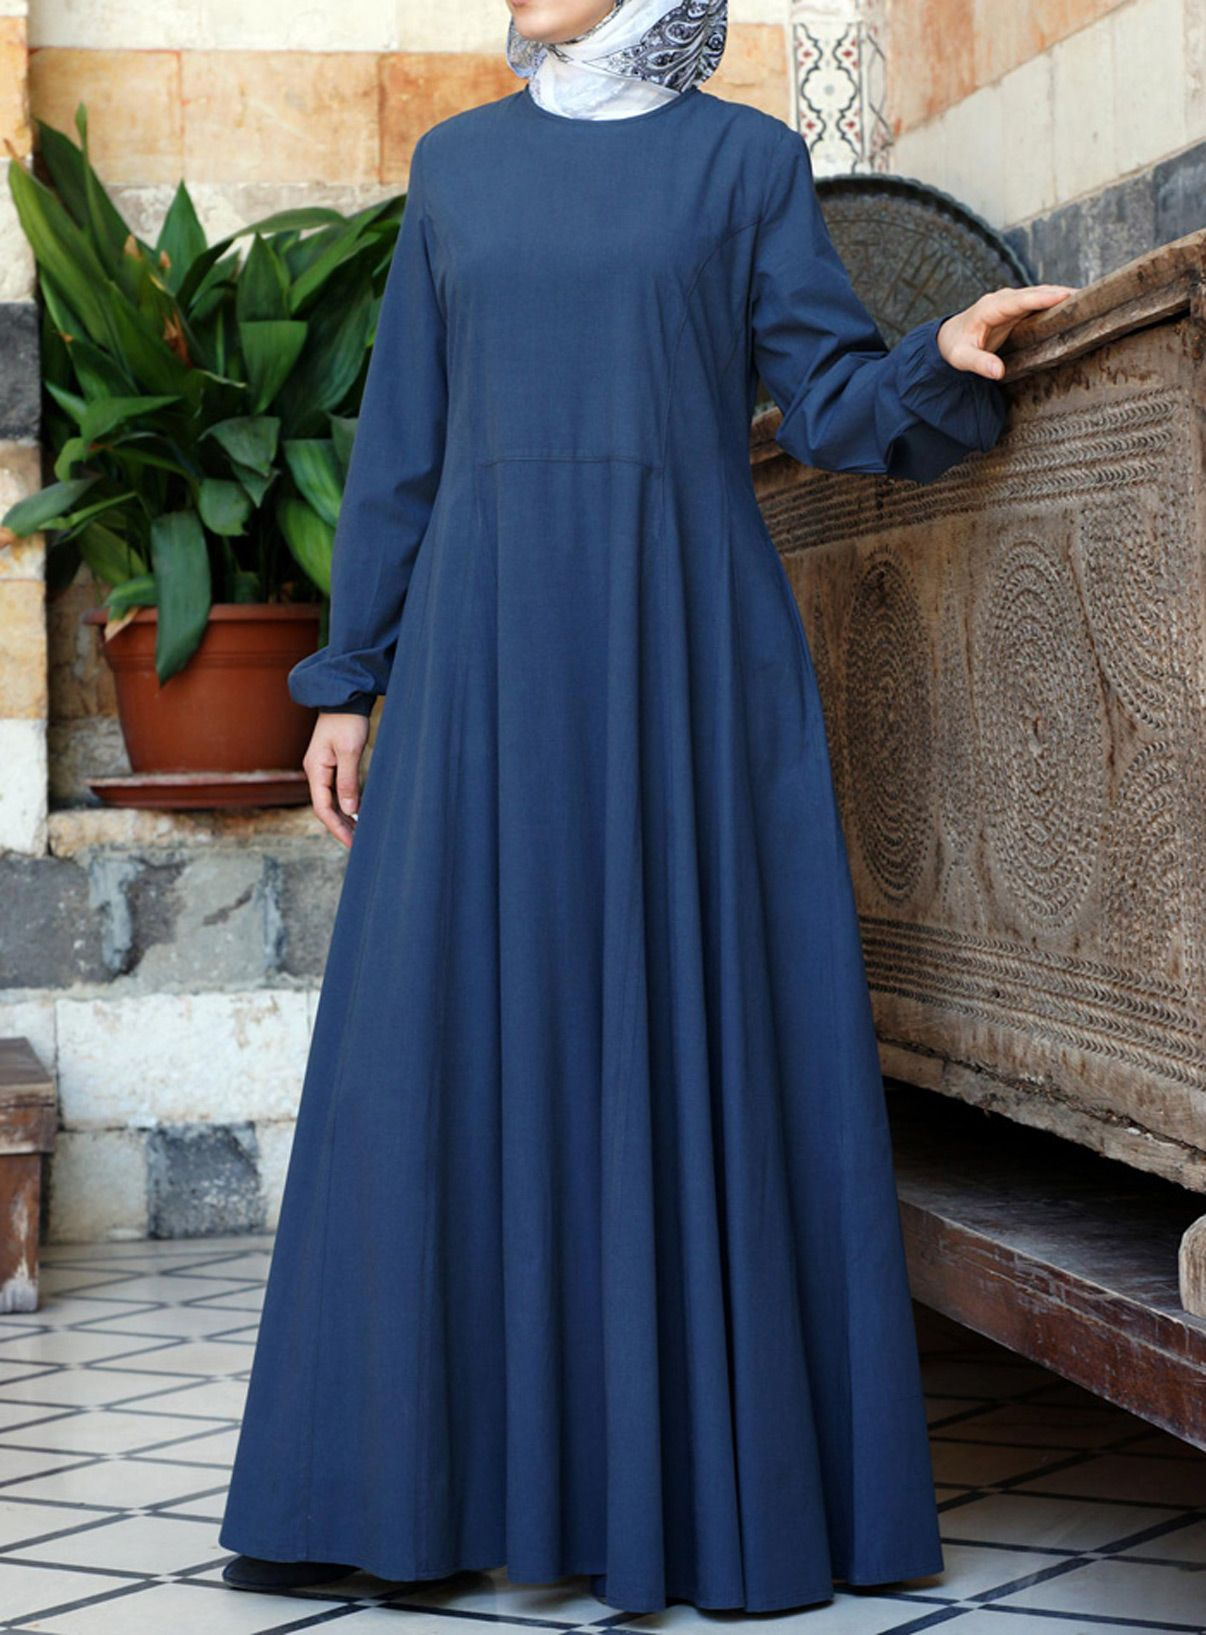 SHUKR USA  Nuria Abaya in Raincloud. I wore this one on Umrah and